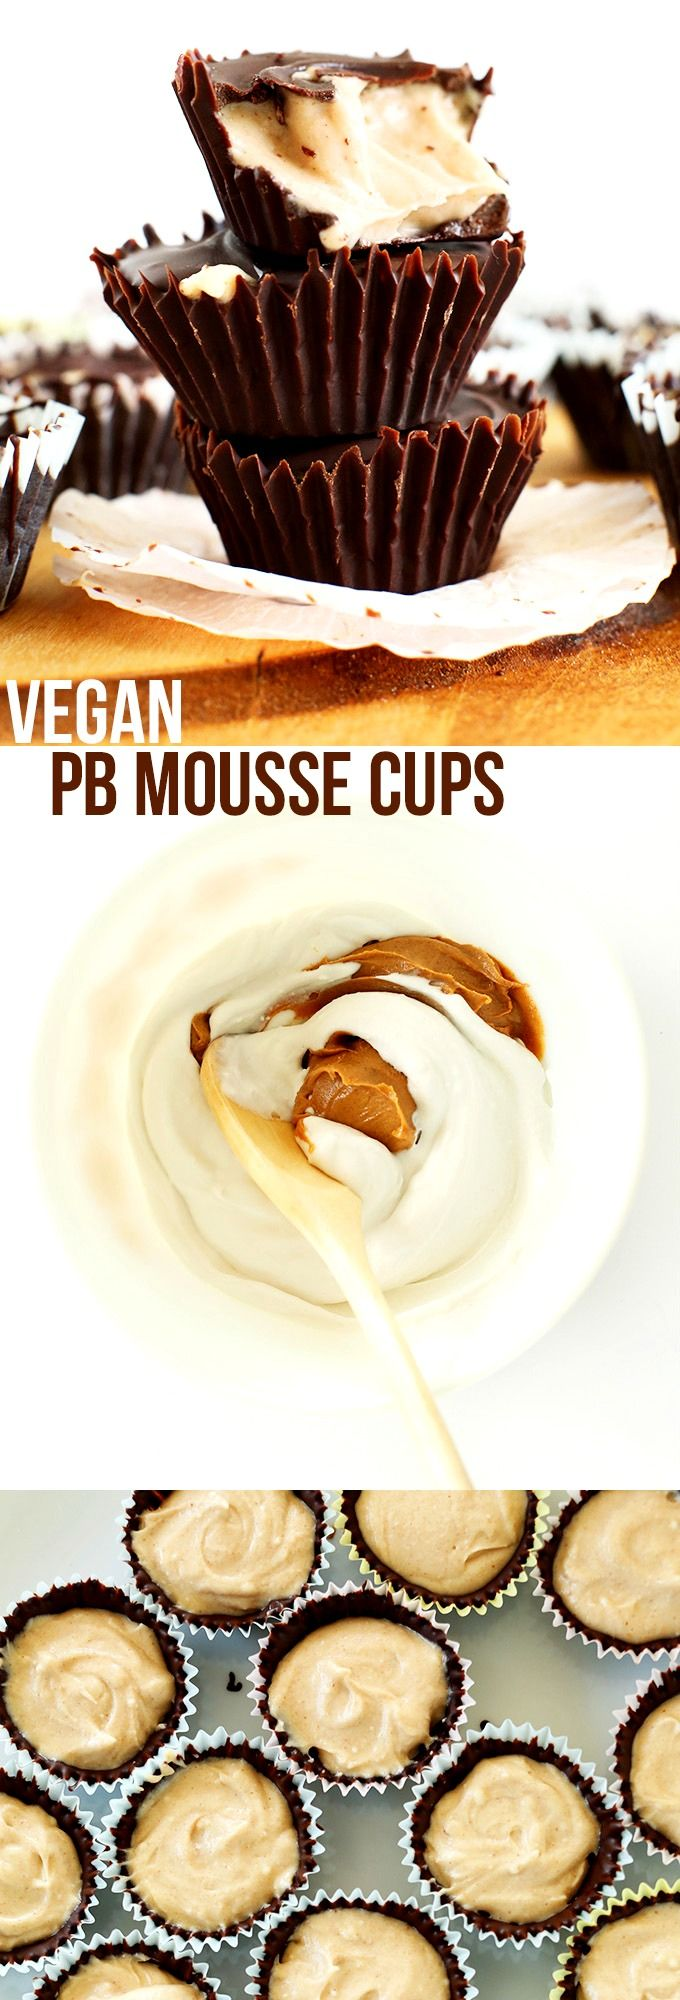 5-Ingredient Vegan Peanut Butter Mousse Cups: crunchy chocolate shell, creamy peanut butter mousse center